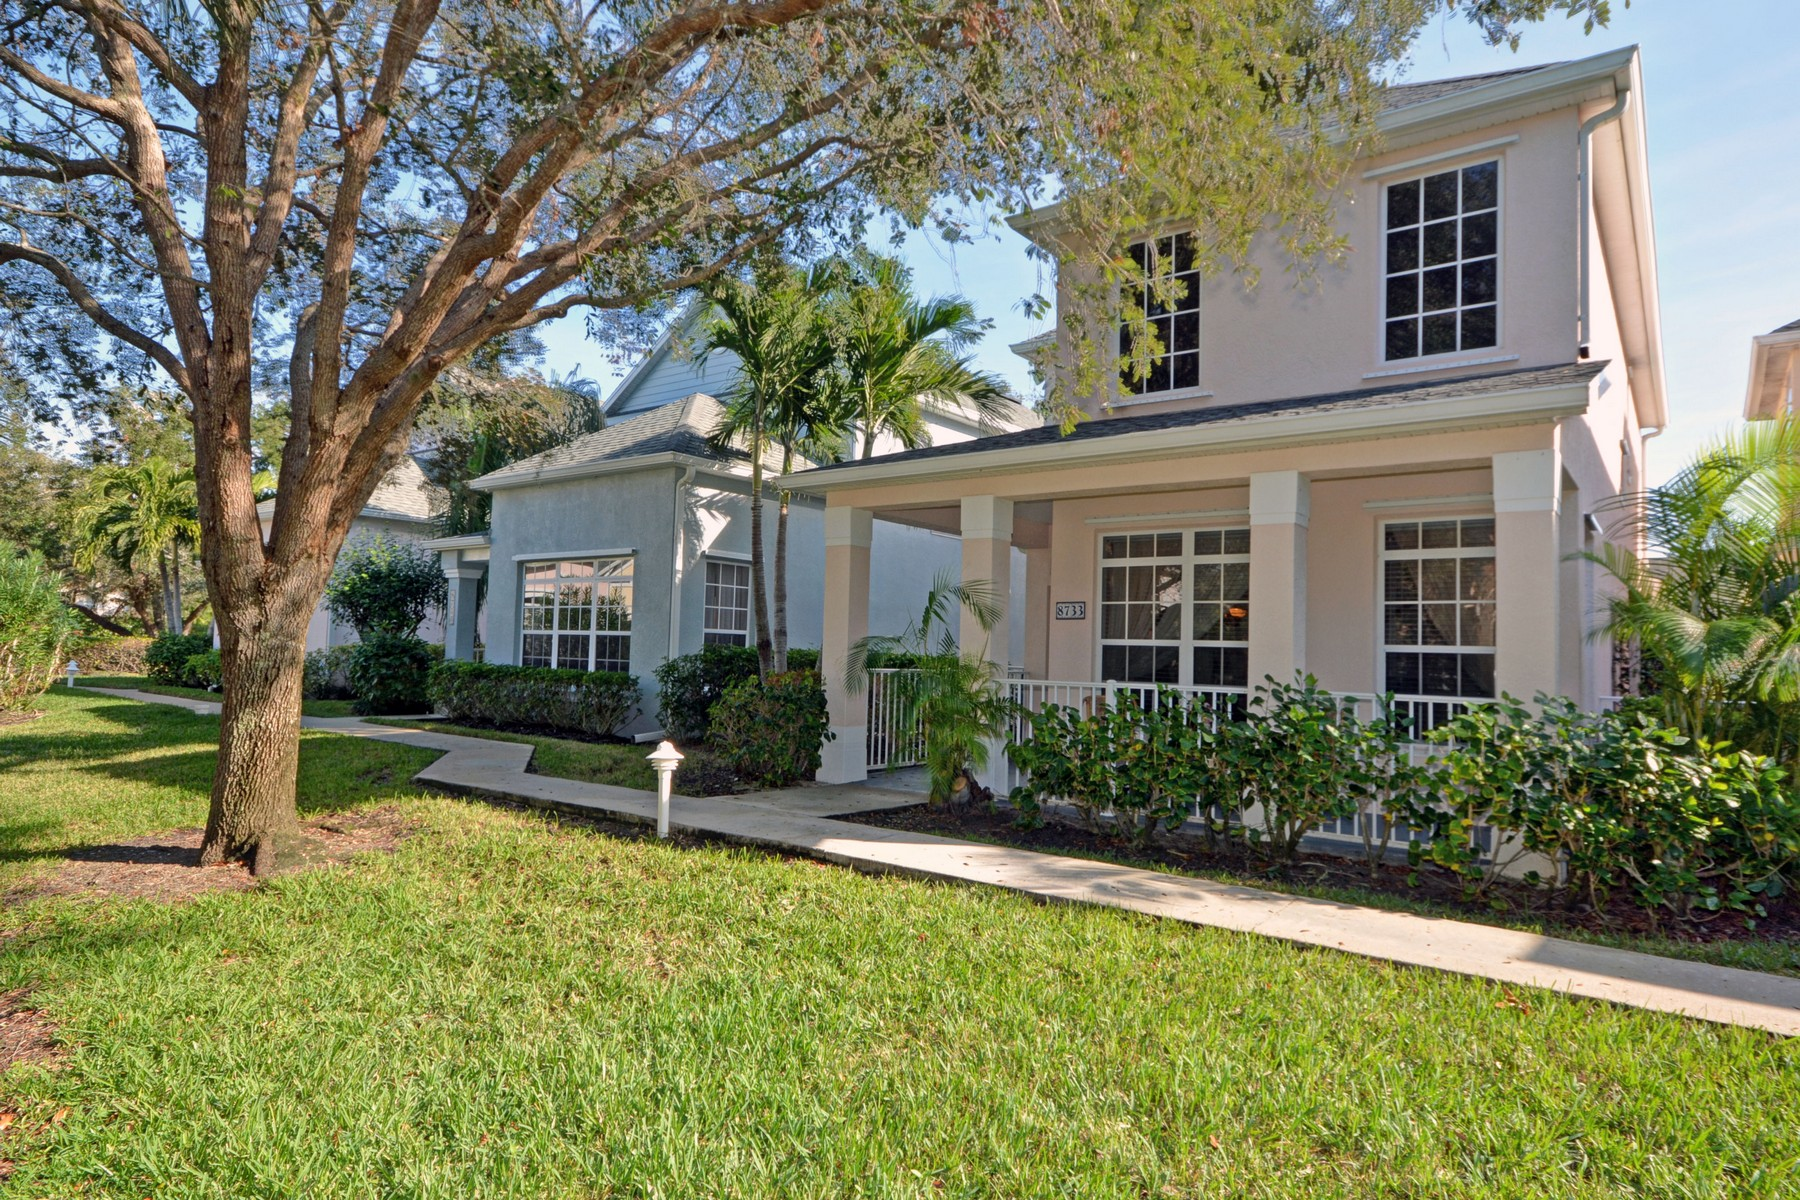 Single Family Home for Sale at Courtyard at the Preserve 8733 Sable Oak Ct Vero Beach, Florida, 32963 United States